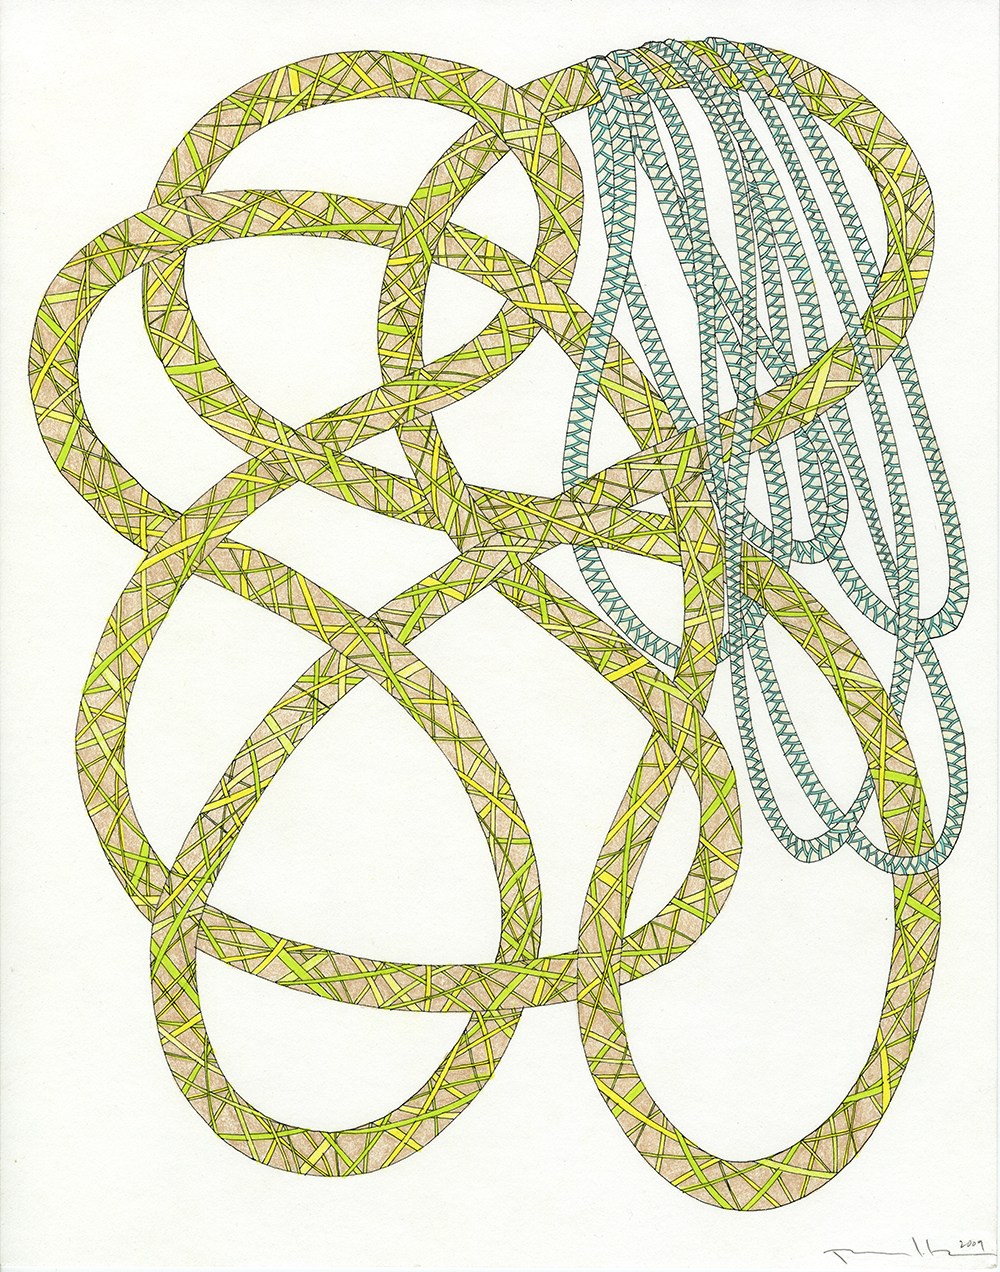 Ropes in Green, Yellow, Tan, & Aqua_11x14_2009_CC.jpg